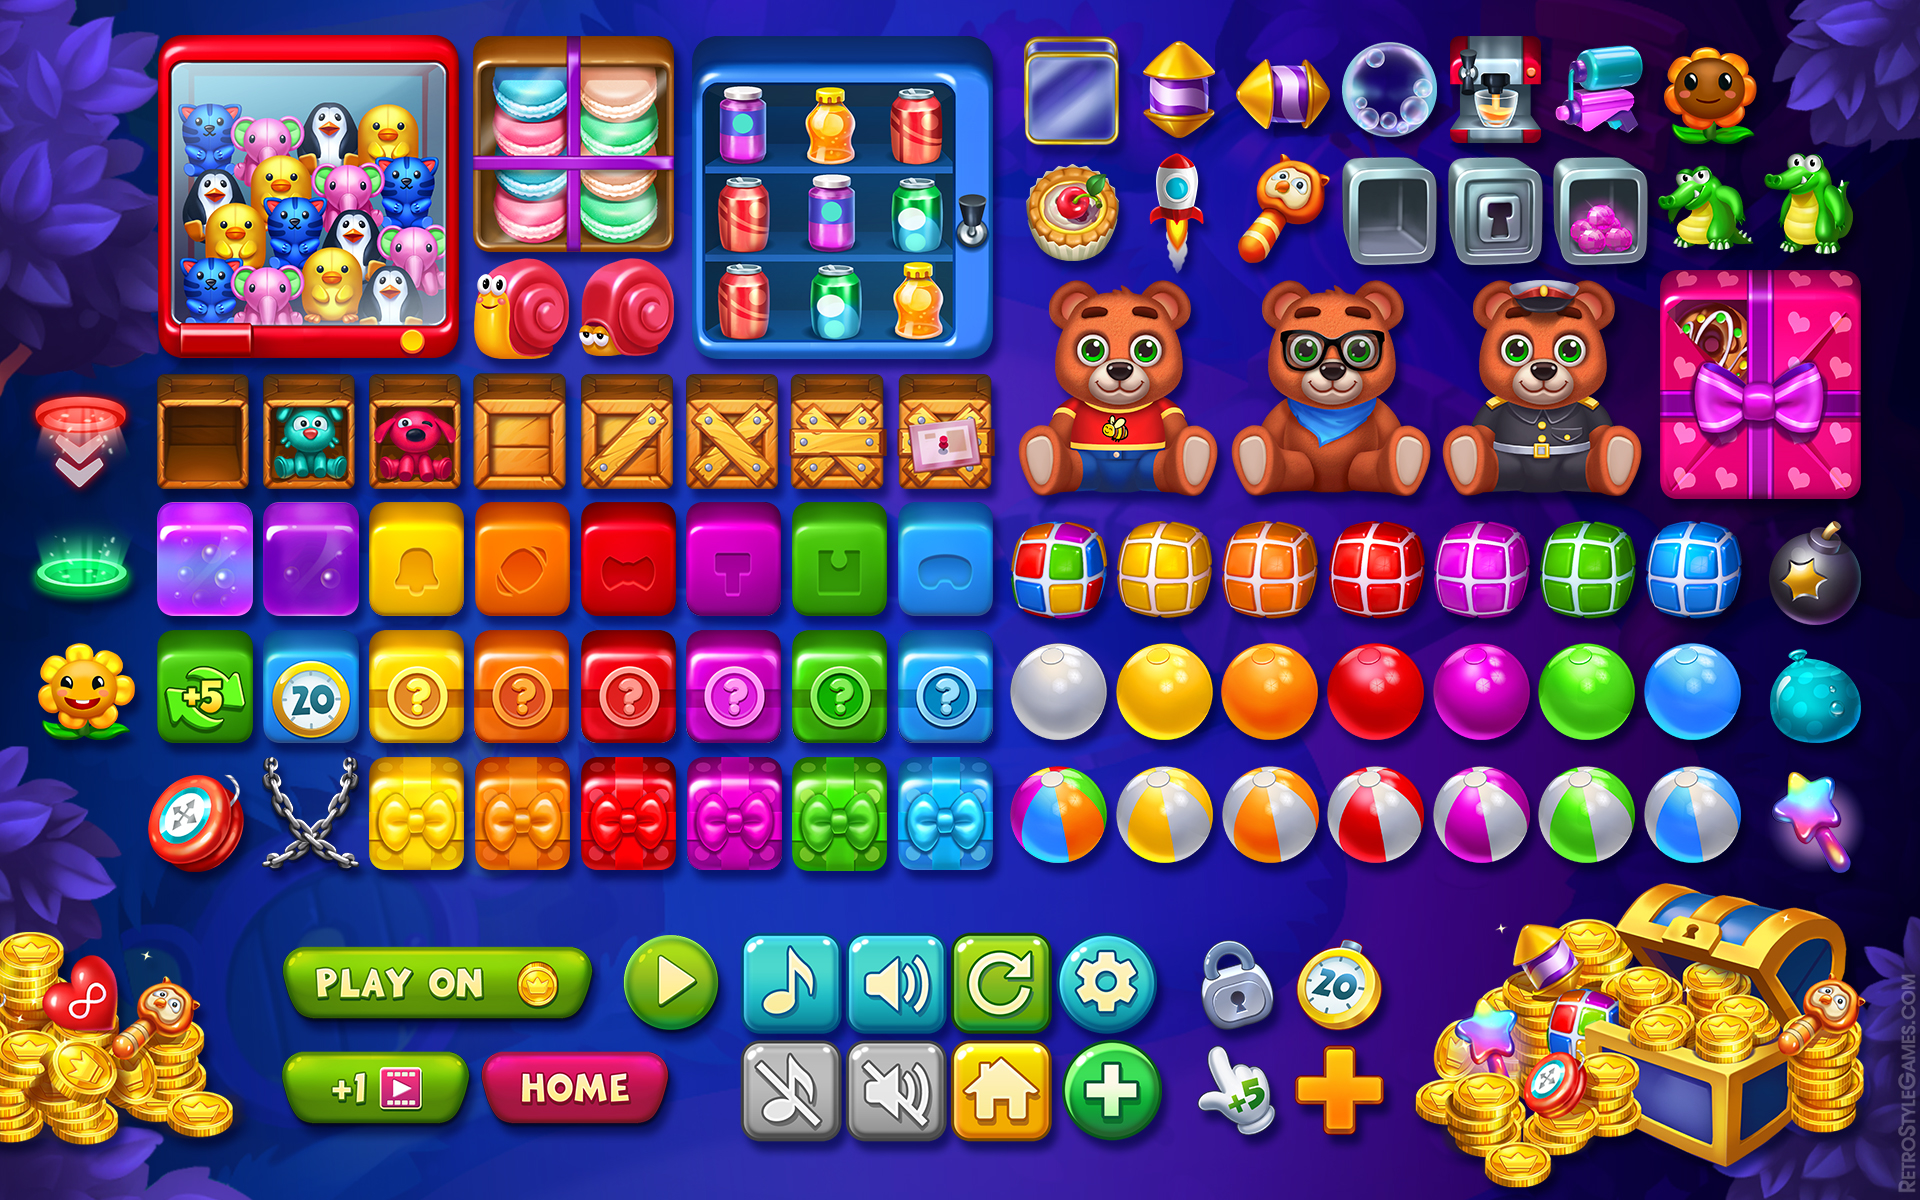 Toy Cartoon IAPs Game Icon Set Chest Gems Boost Buttons